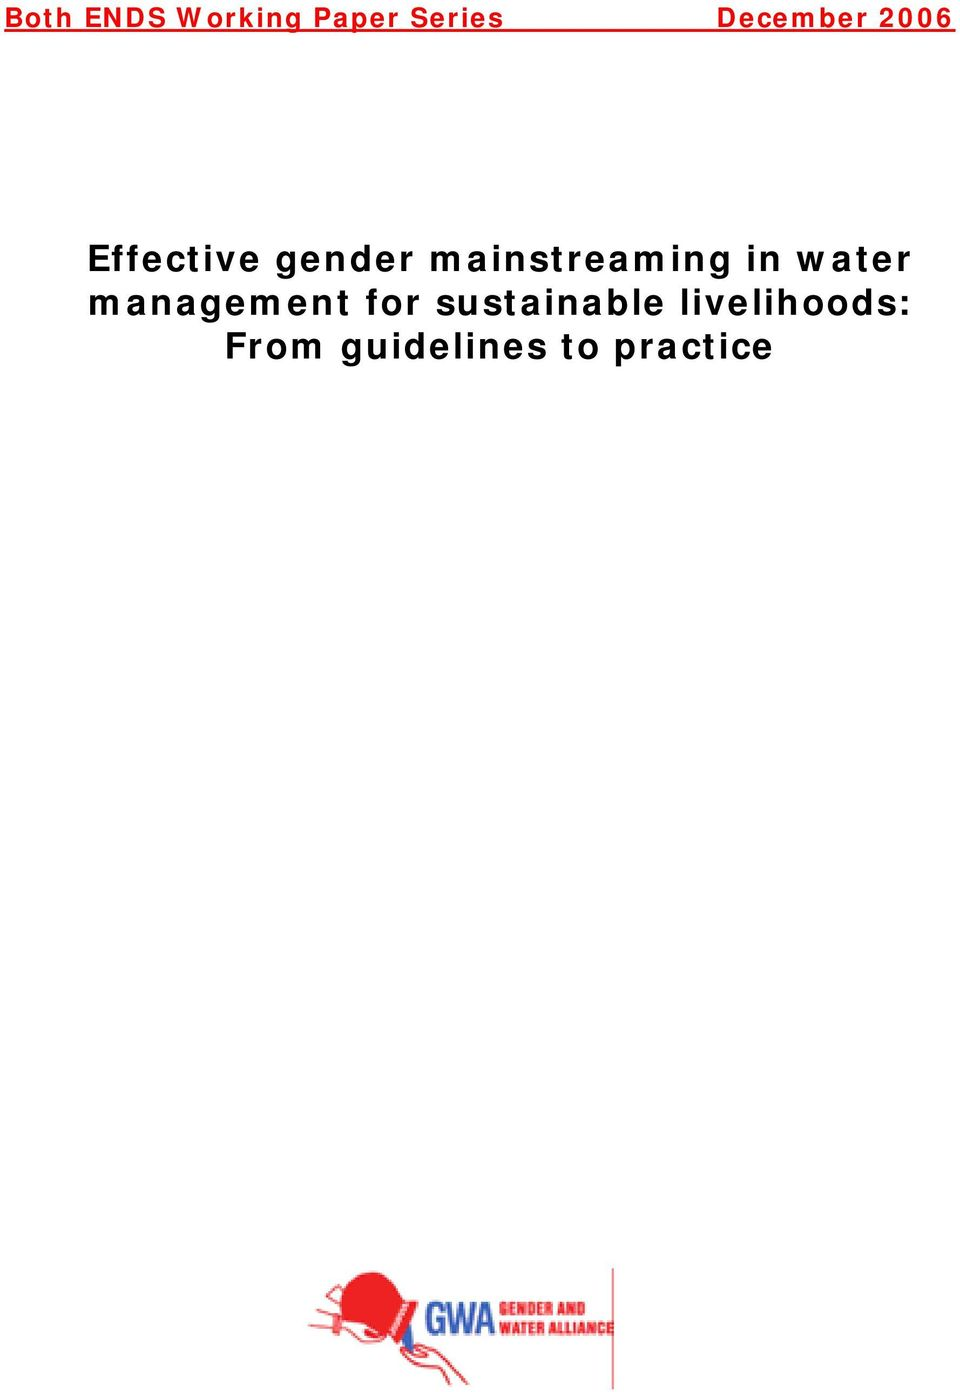 mainstreaming in water management for